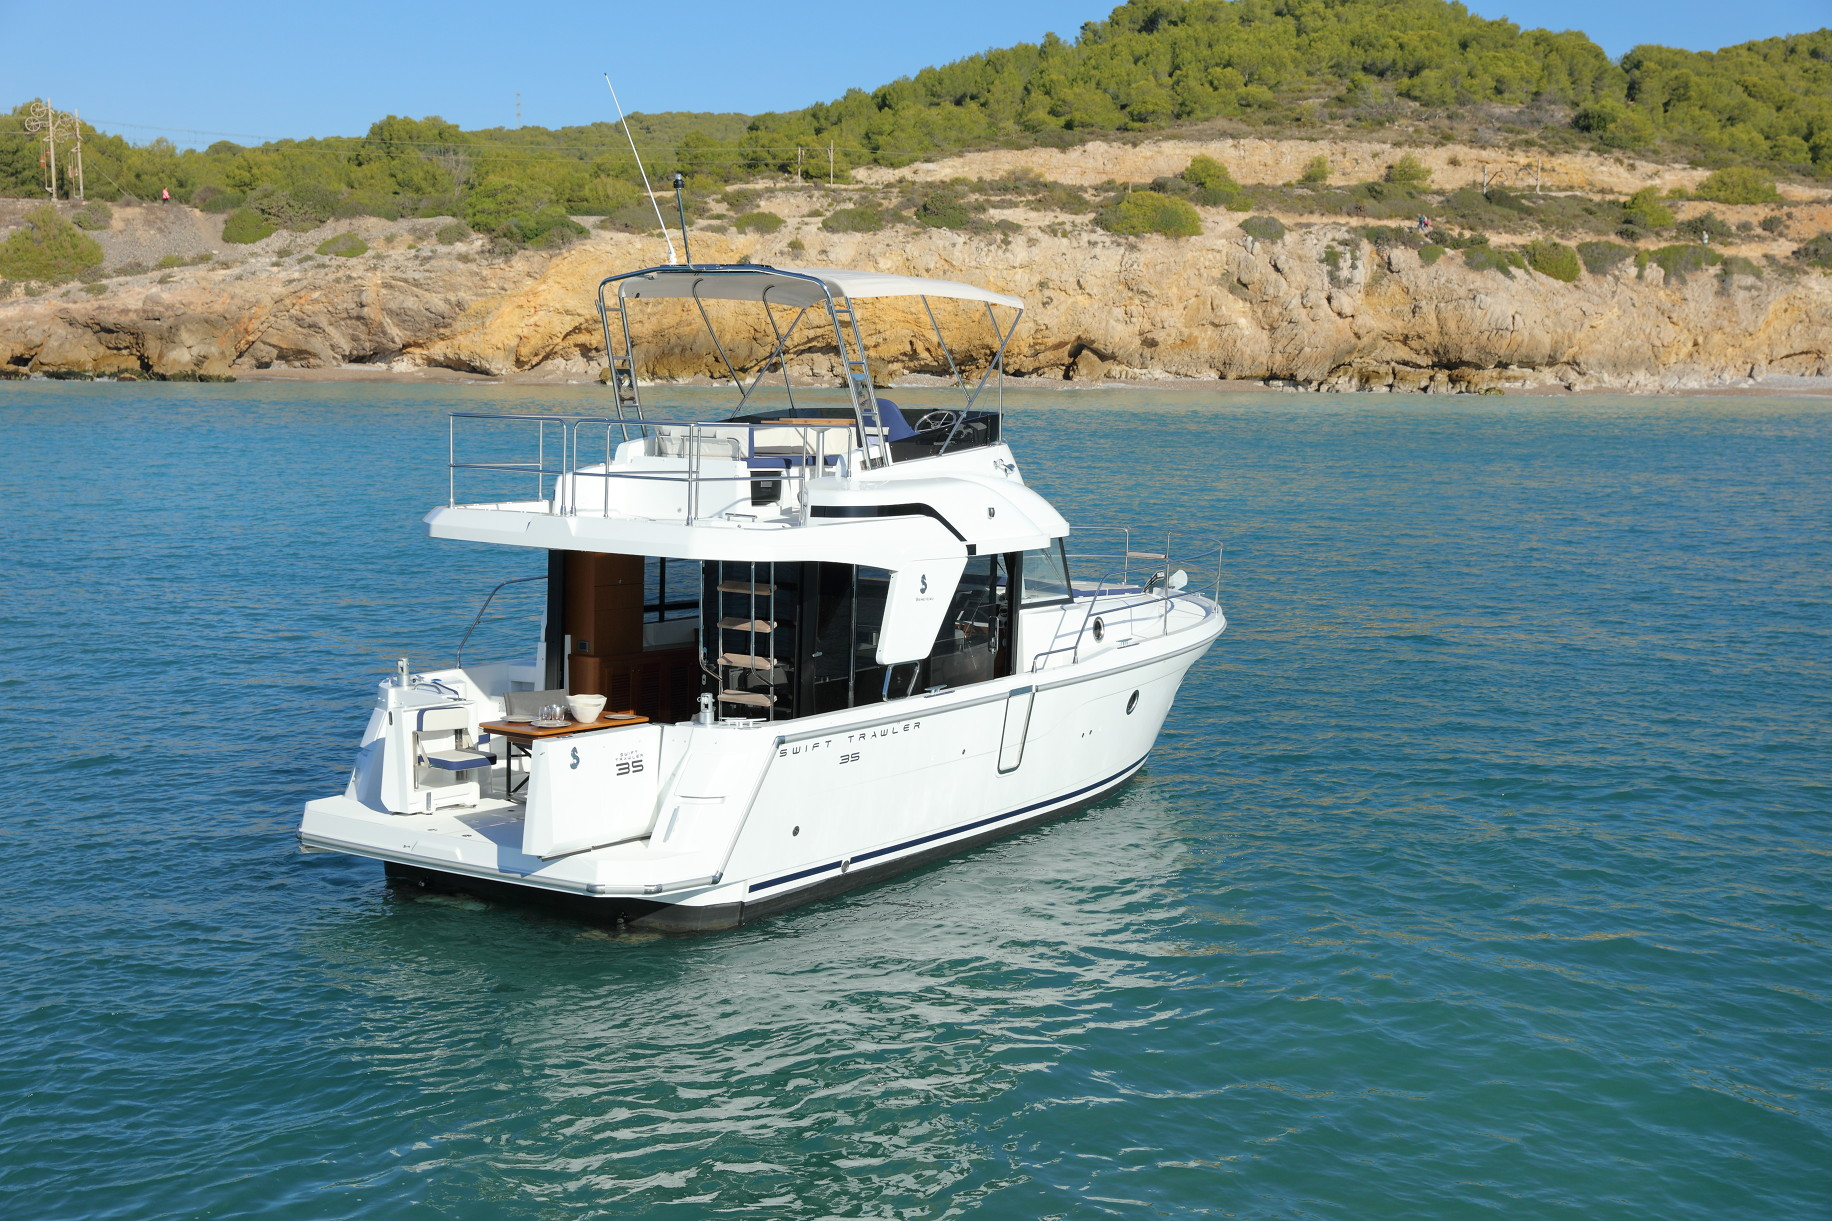 Beneteau Swift Trawler 35 Sundance Marine New Used Boat